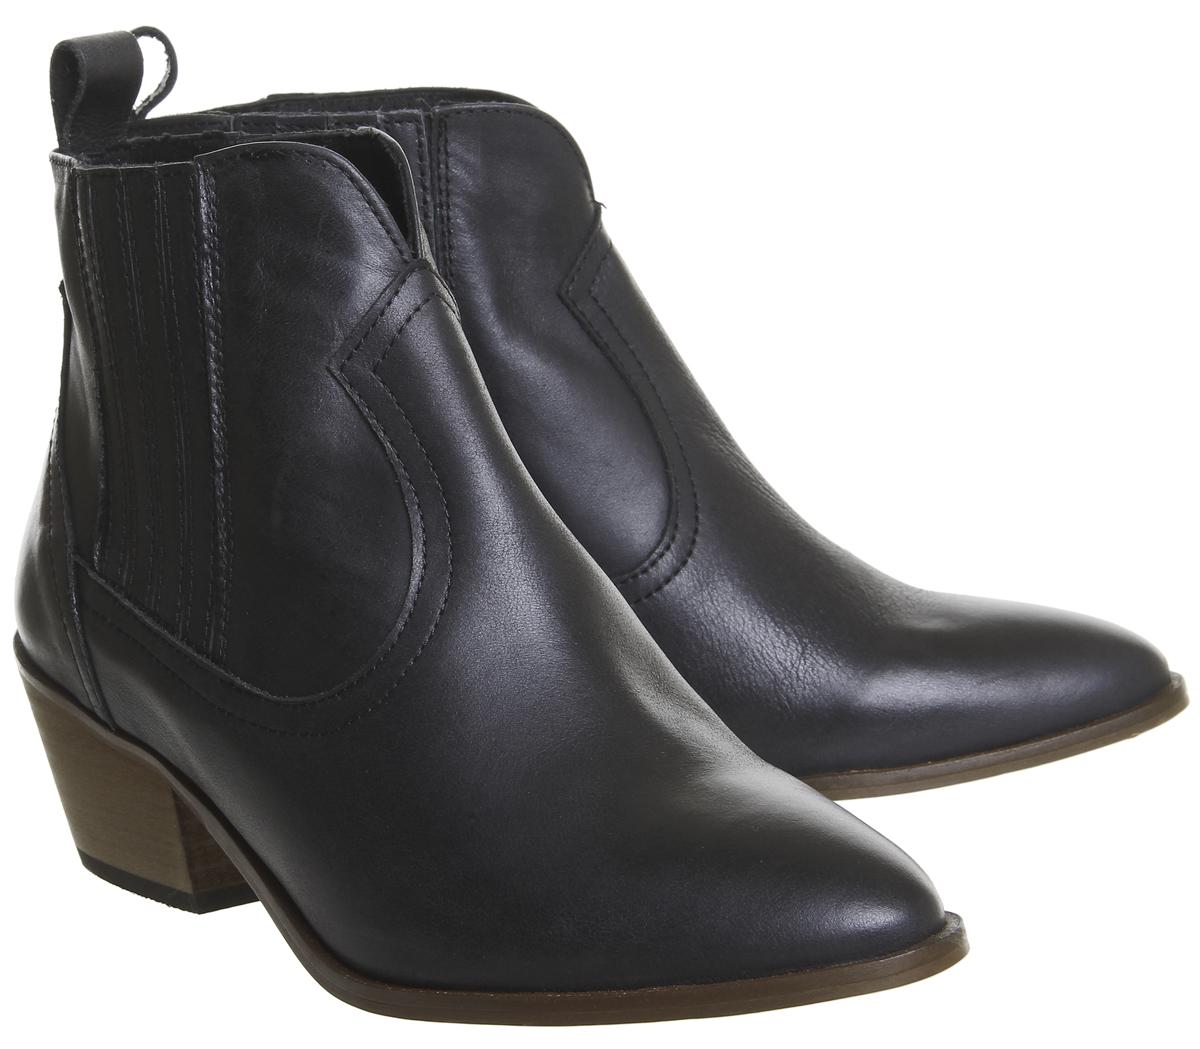 Office Leather America Western Chelsea Boots in Black